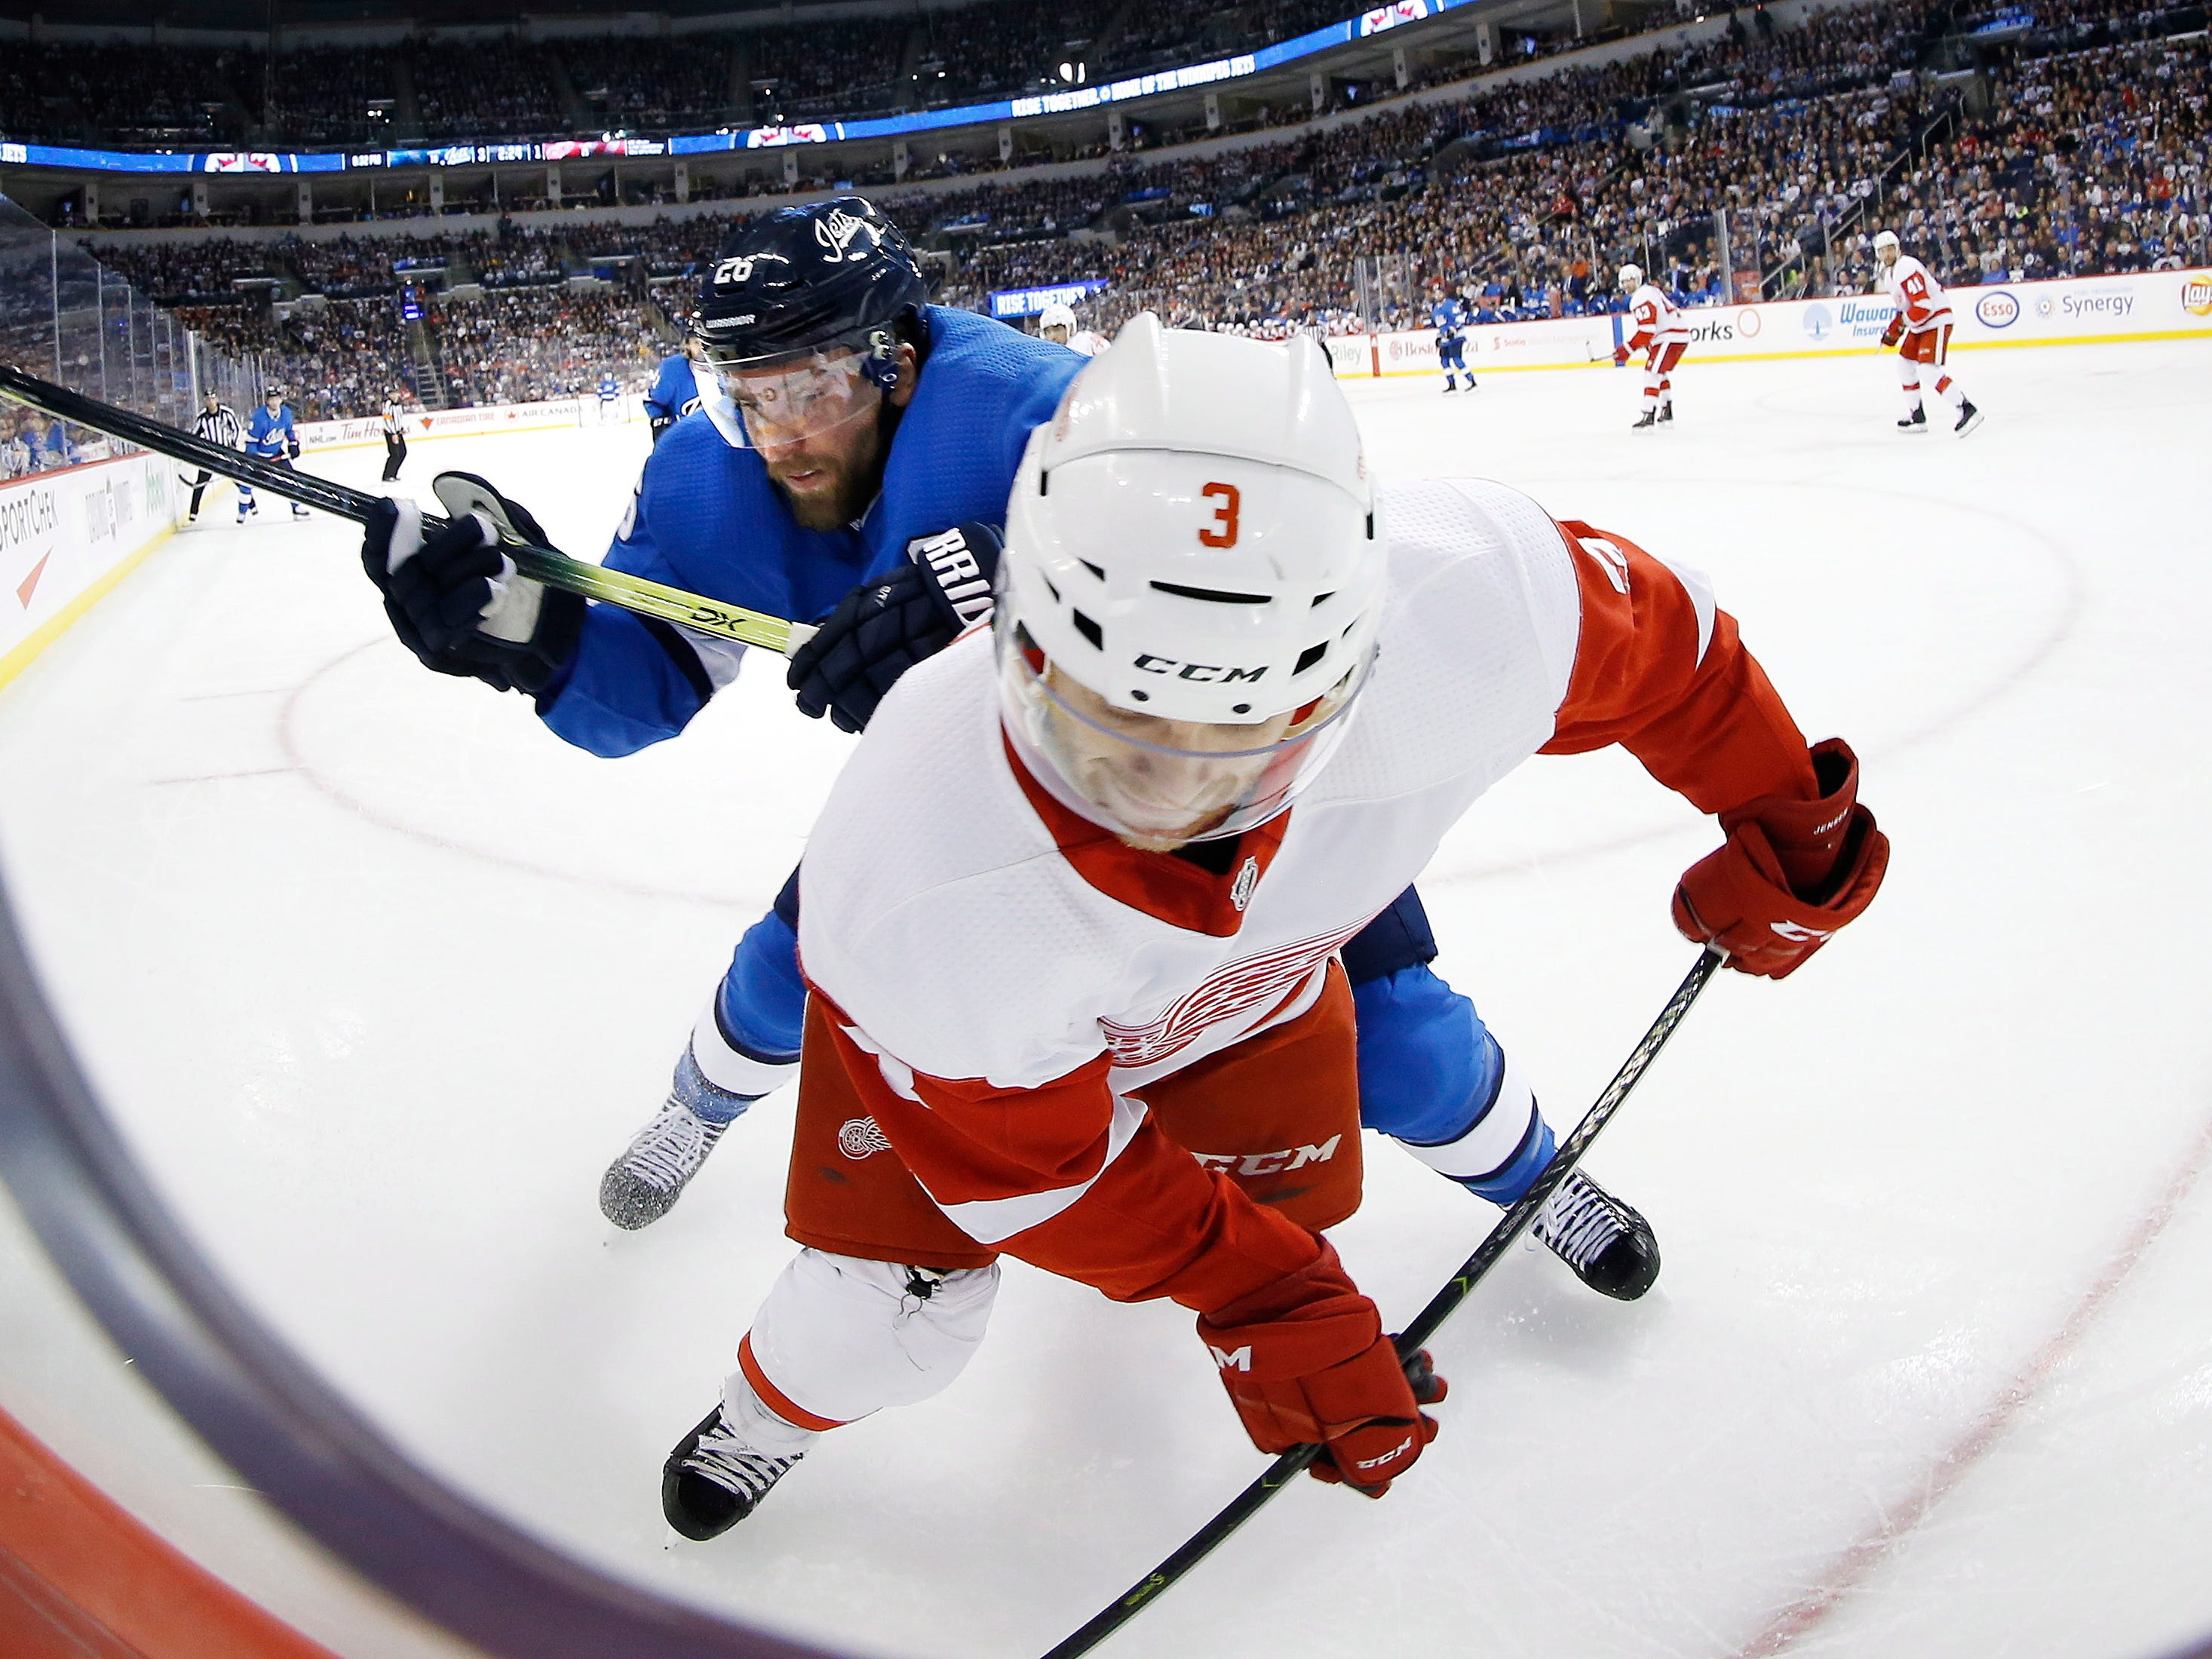 Winnipeg Jets' Jack Roslovic checks Detroit Red Wings' Nick Jensen during the second period Friday, Jan. 11, 2019, in Winnipeg, Manitoba.